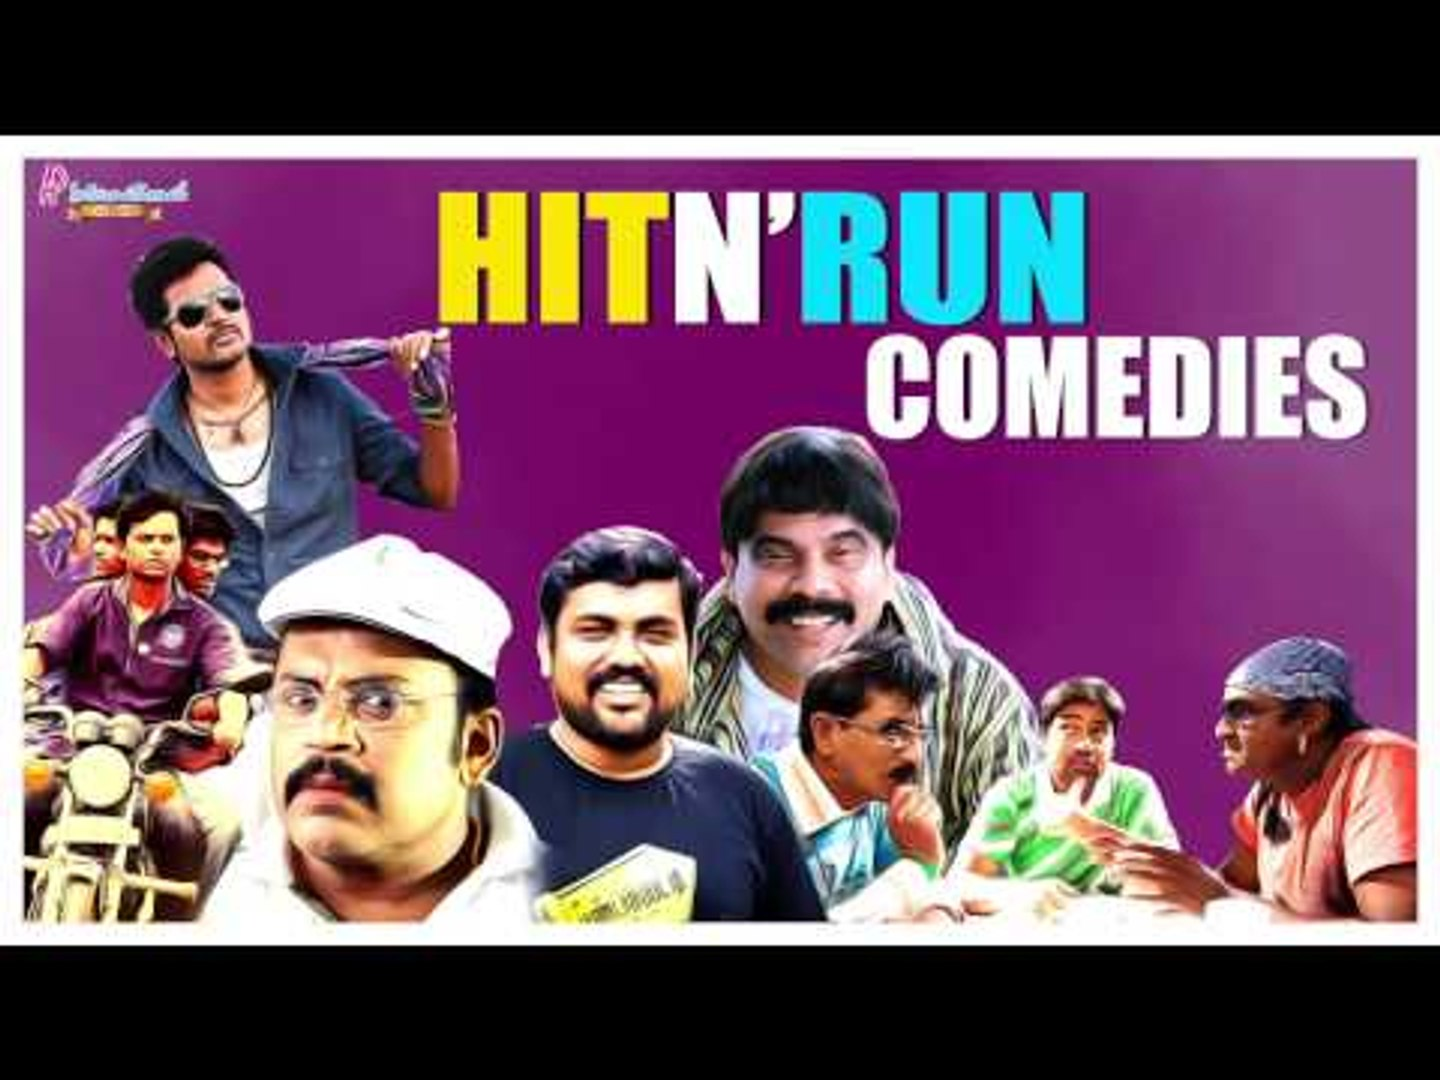 Hit and Run Comedy Scenes | Latest Tamil Movie Comedy Scenes 2017 | API Tamil